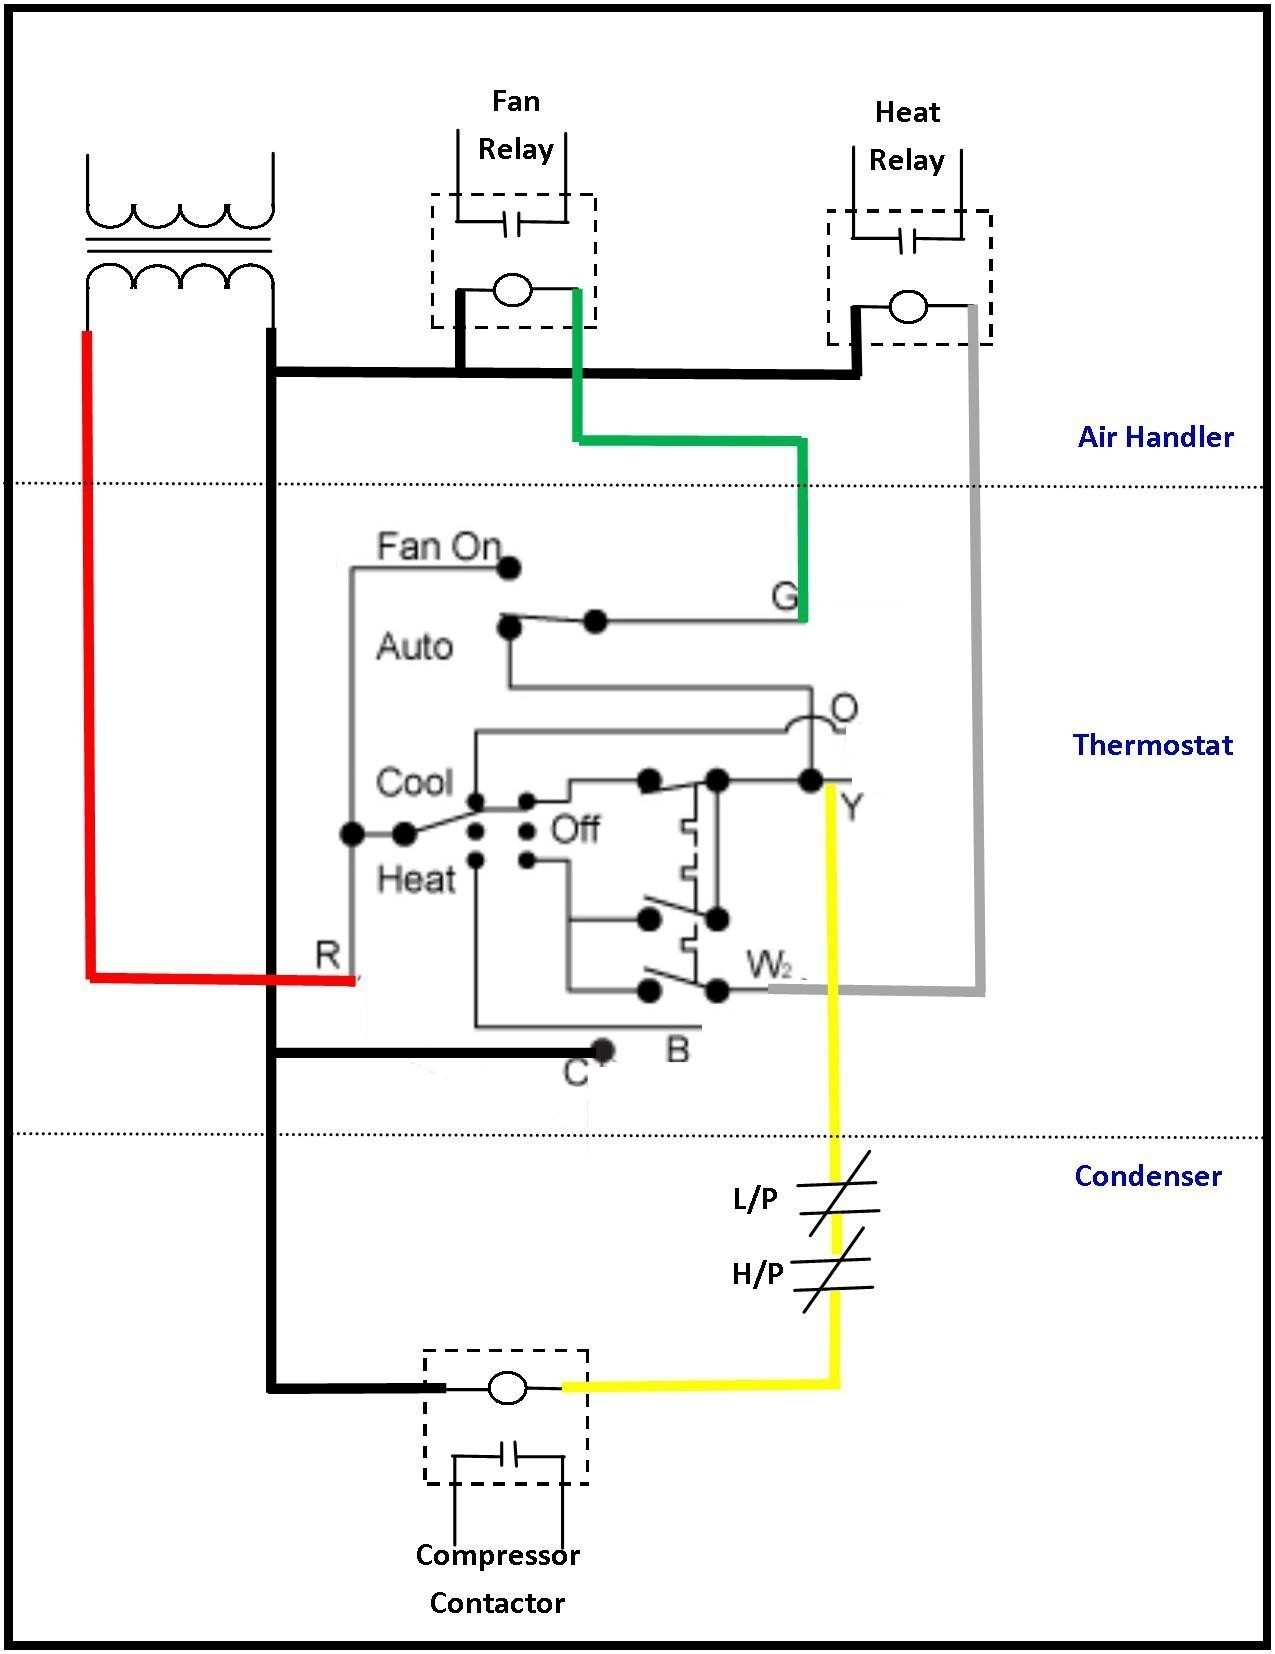 Rheem Ac Fuse Box - wiring diagram electrical-while -  electrical-while.labottegadisilvia.it | Hvac Fuse Box Wiring |  | electrical-while.labottegadisilvia.it